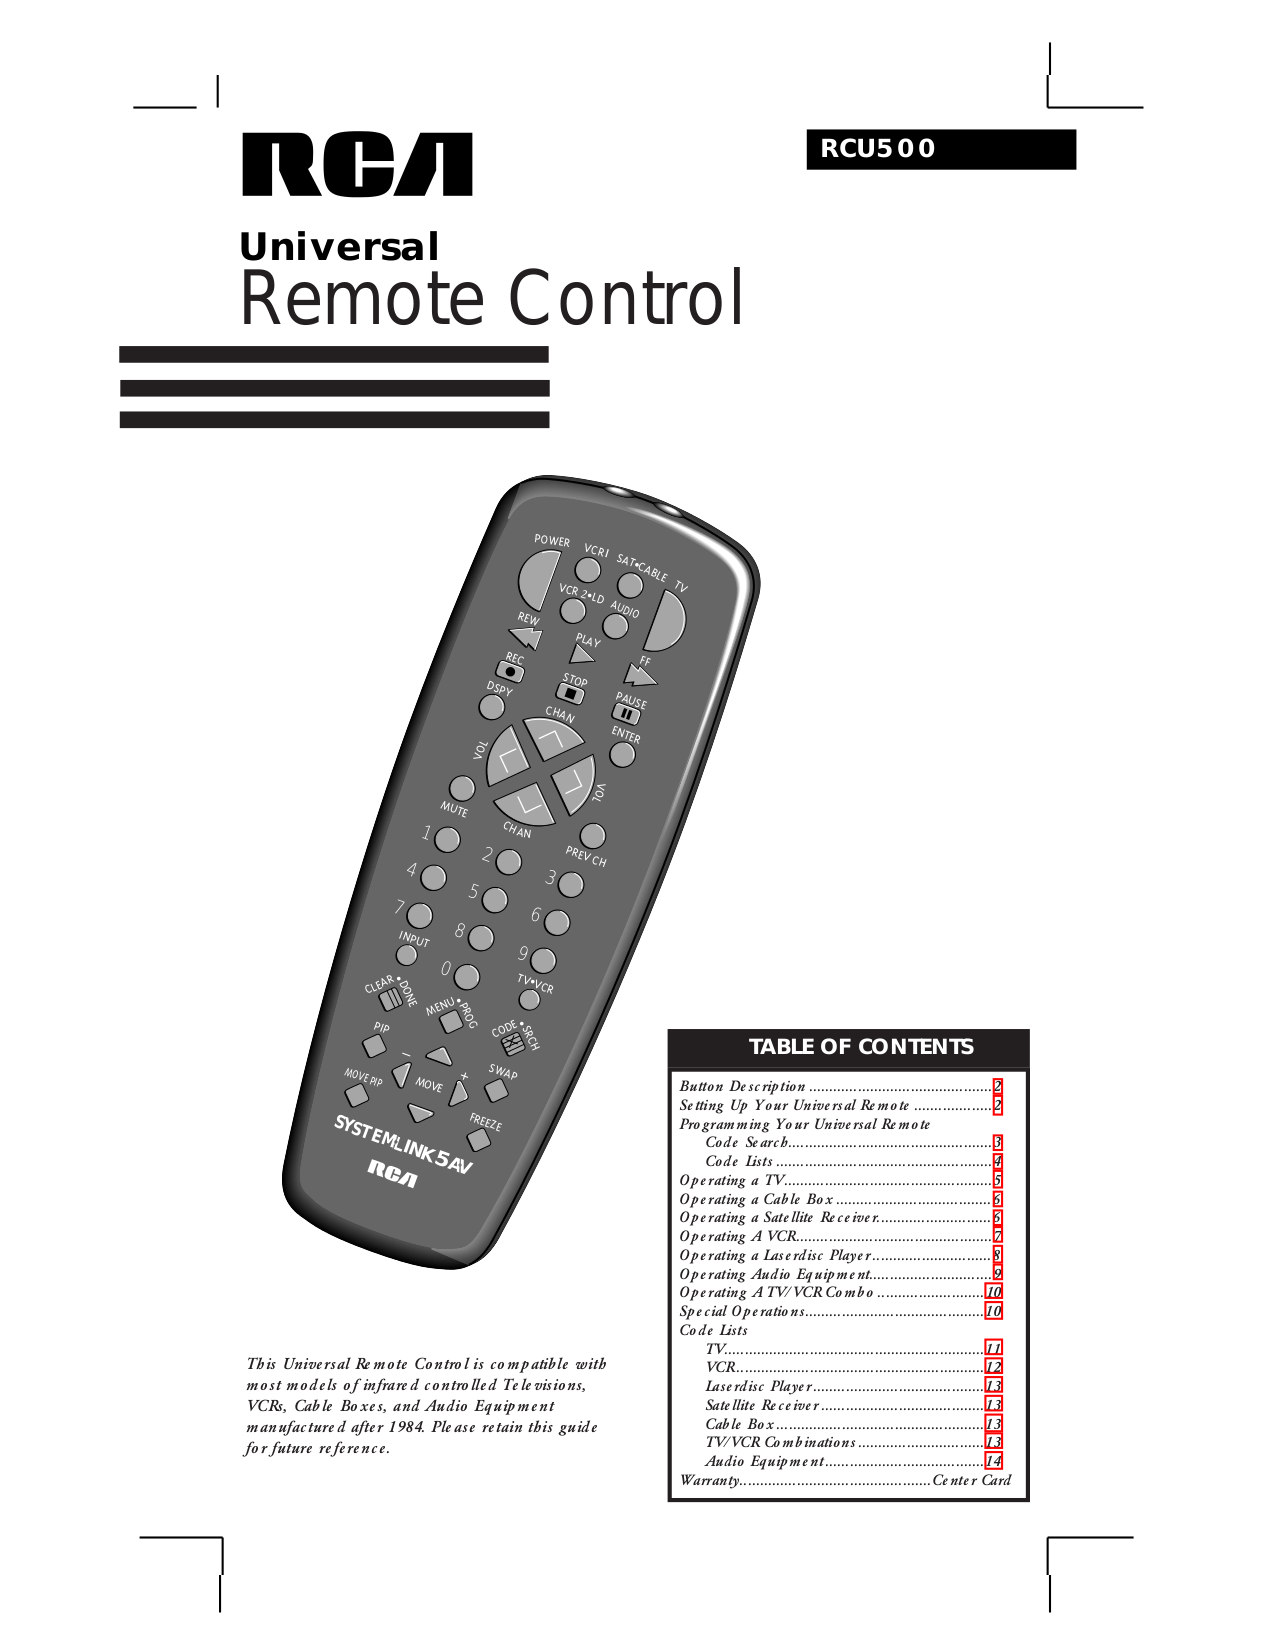 Download Gemini G401s Universal Remote Control Manual free